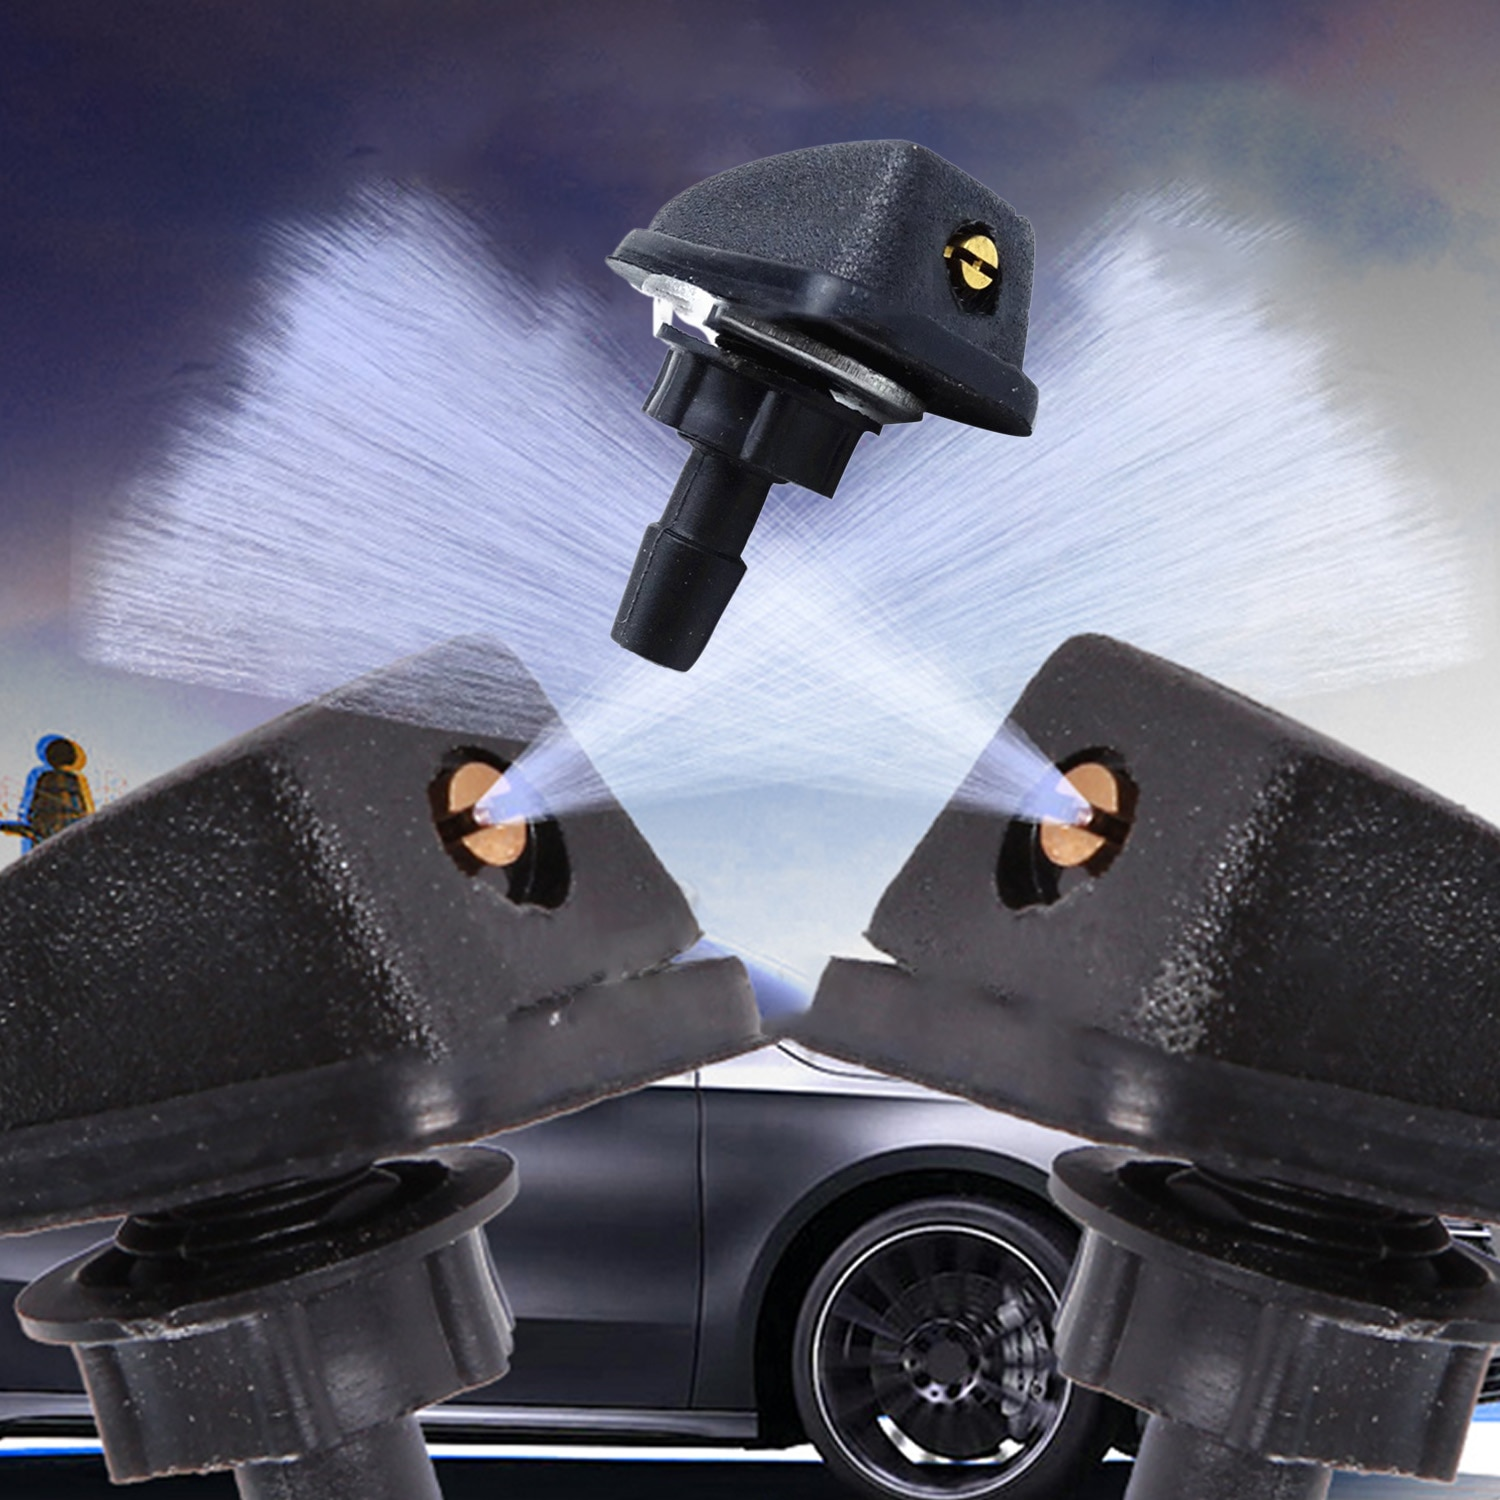 1/2Pcs Car Water Spray Nozzle Vehicle Front Windshield Washer Fan-Shaped Water Spout Nozzle Auto Accessories Dropshipping